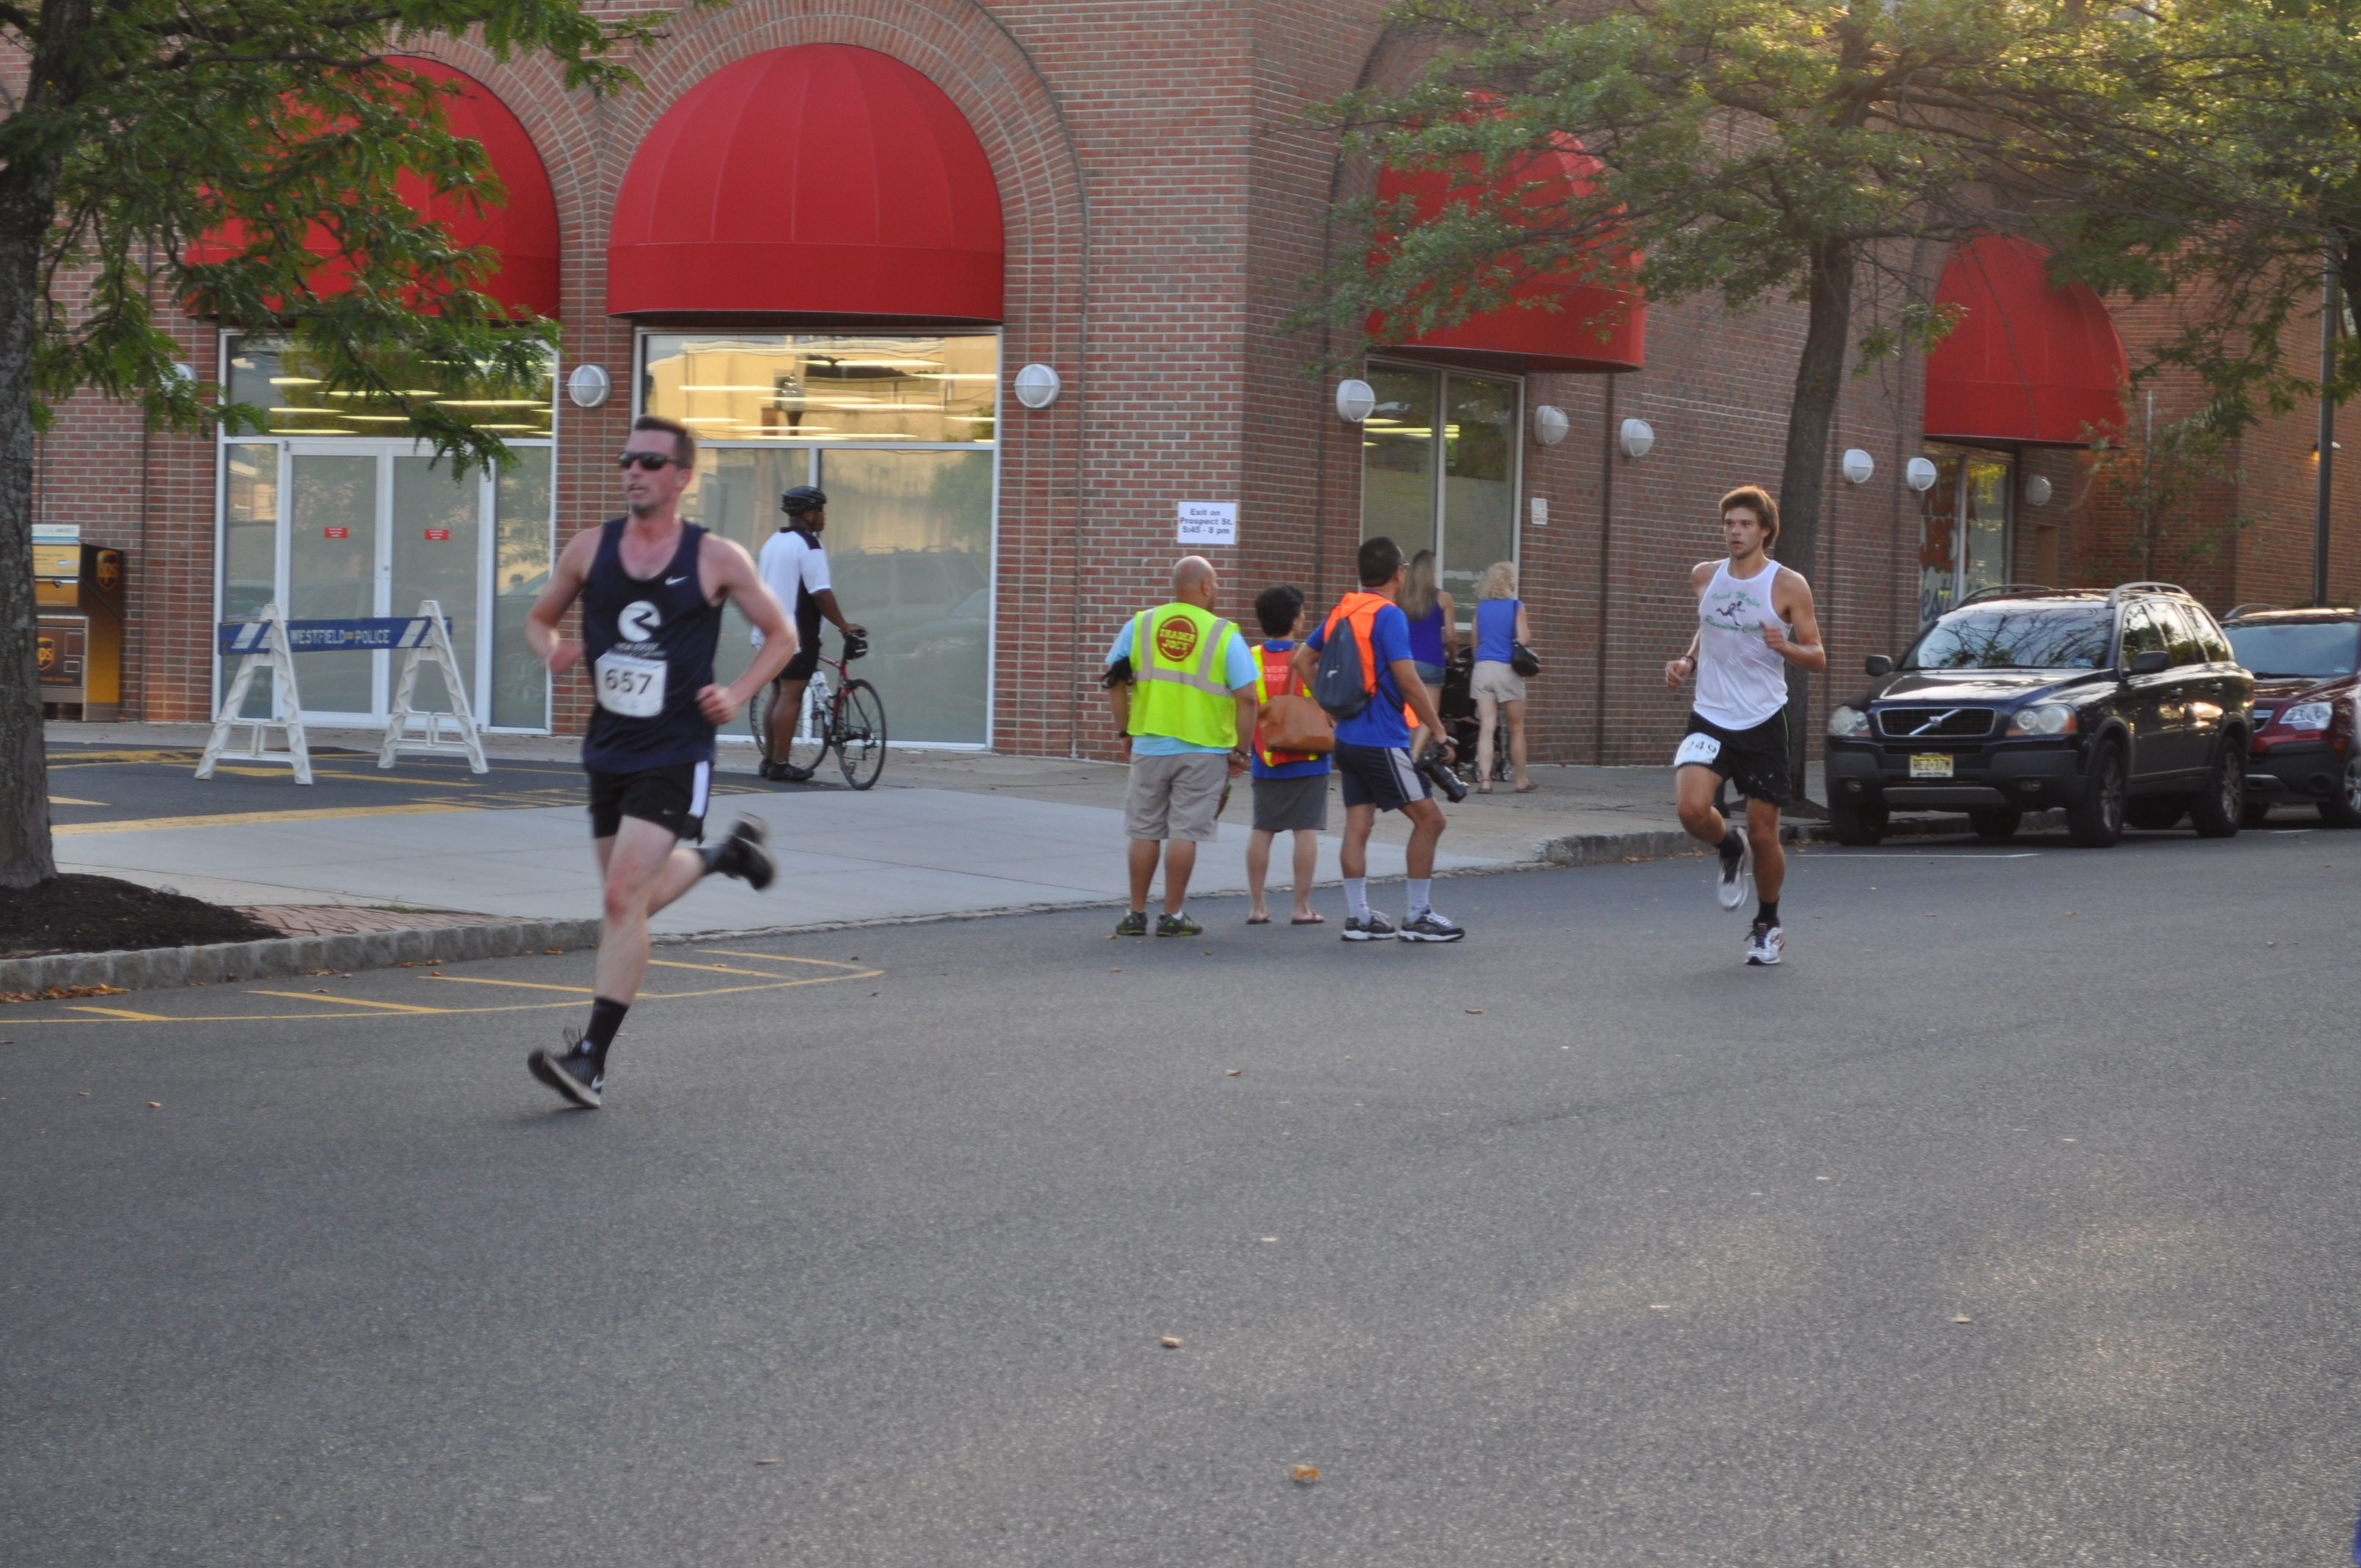 Thousands Converge in Downtown Westfield for Pizza Run